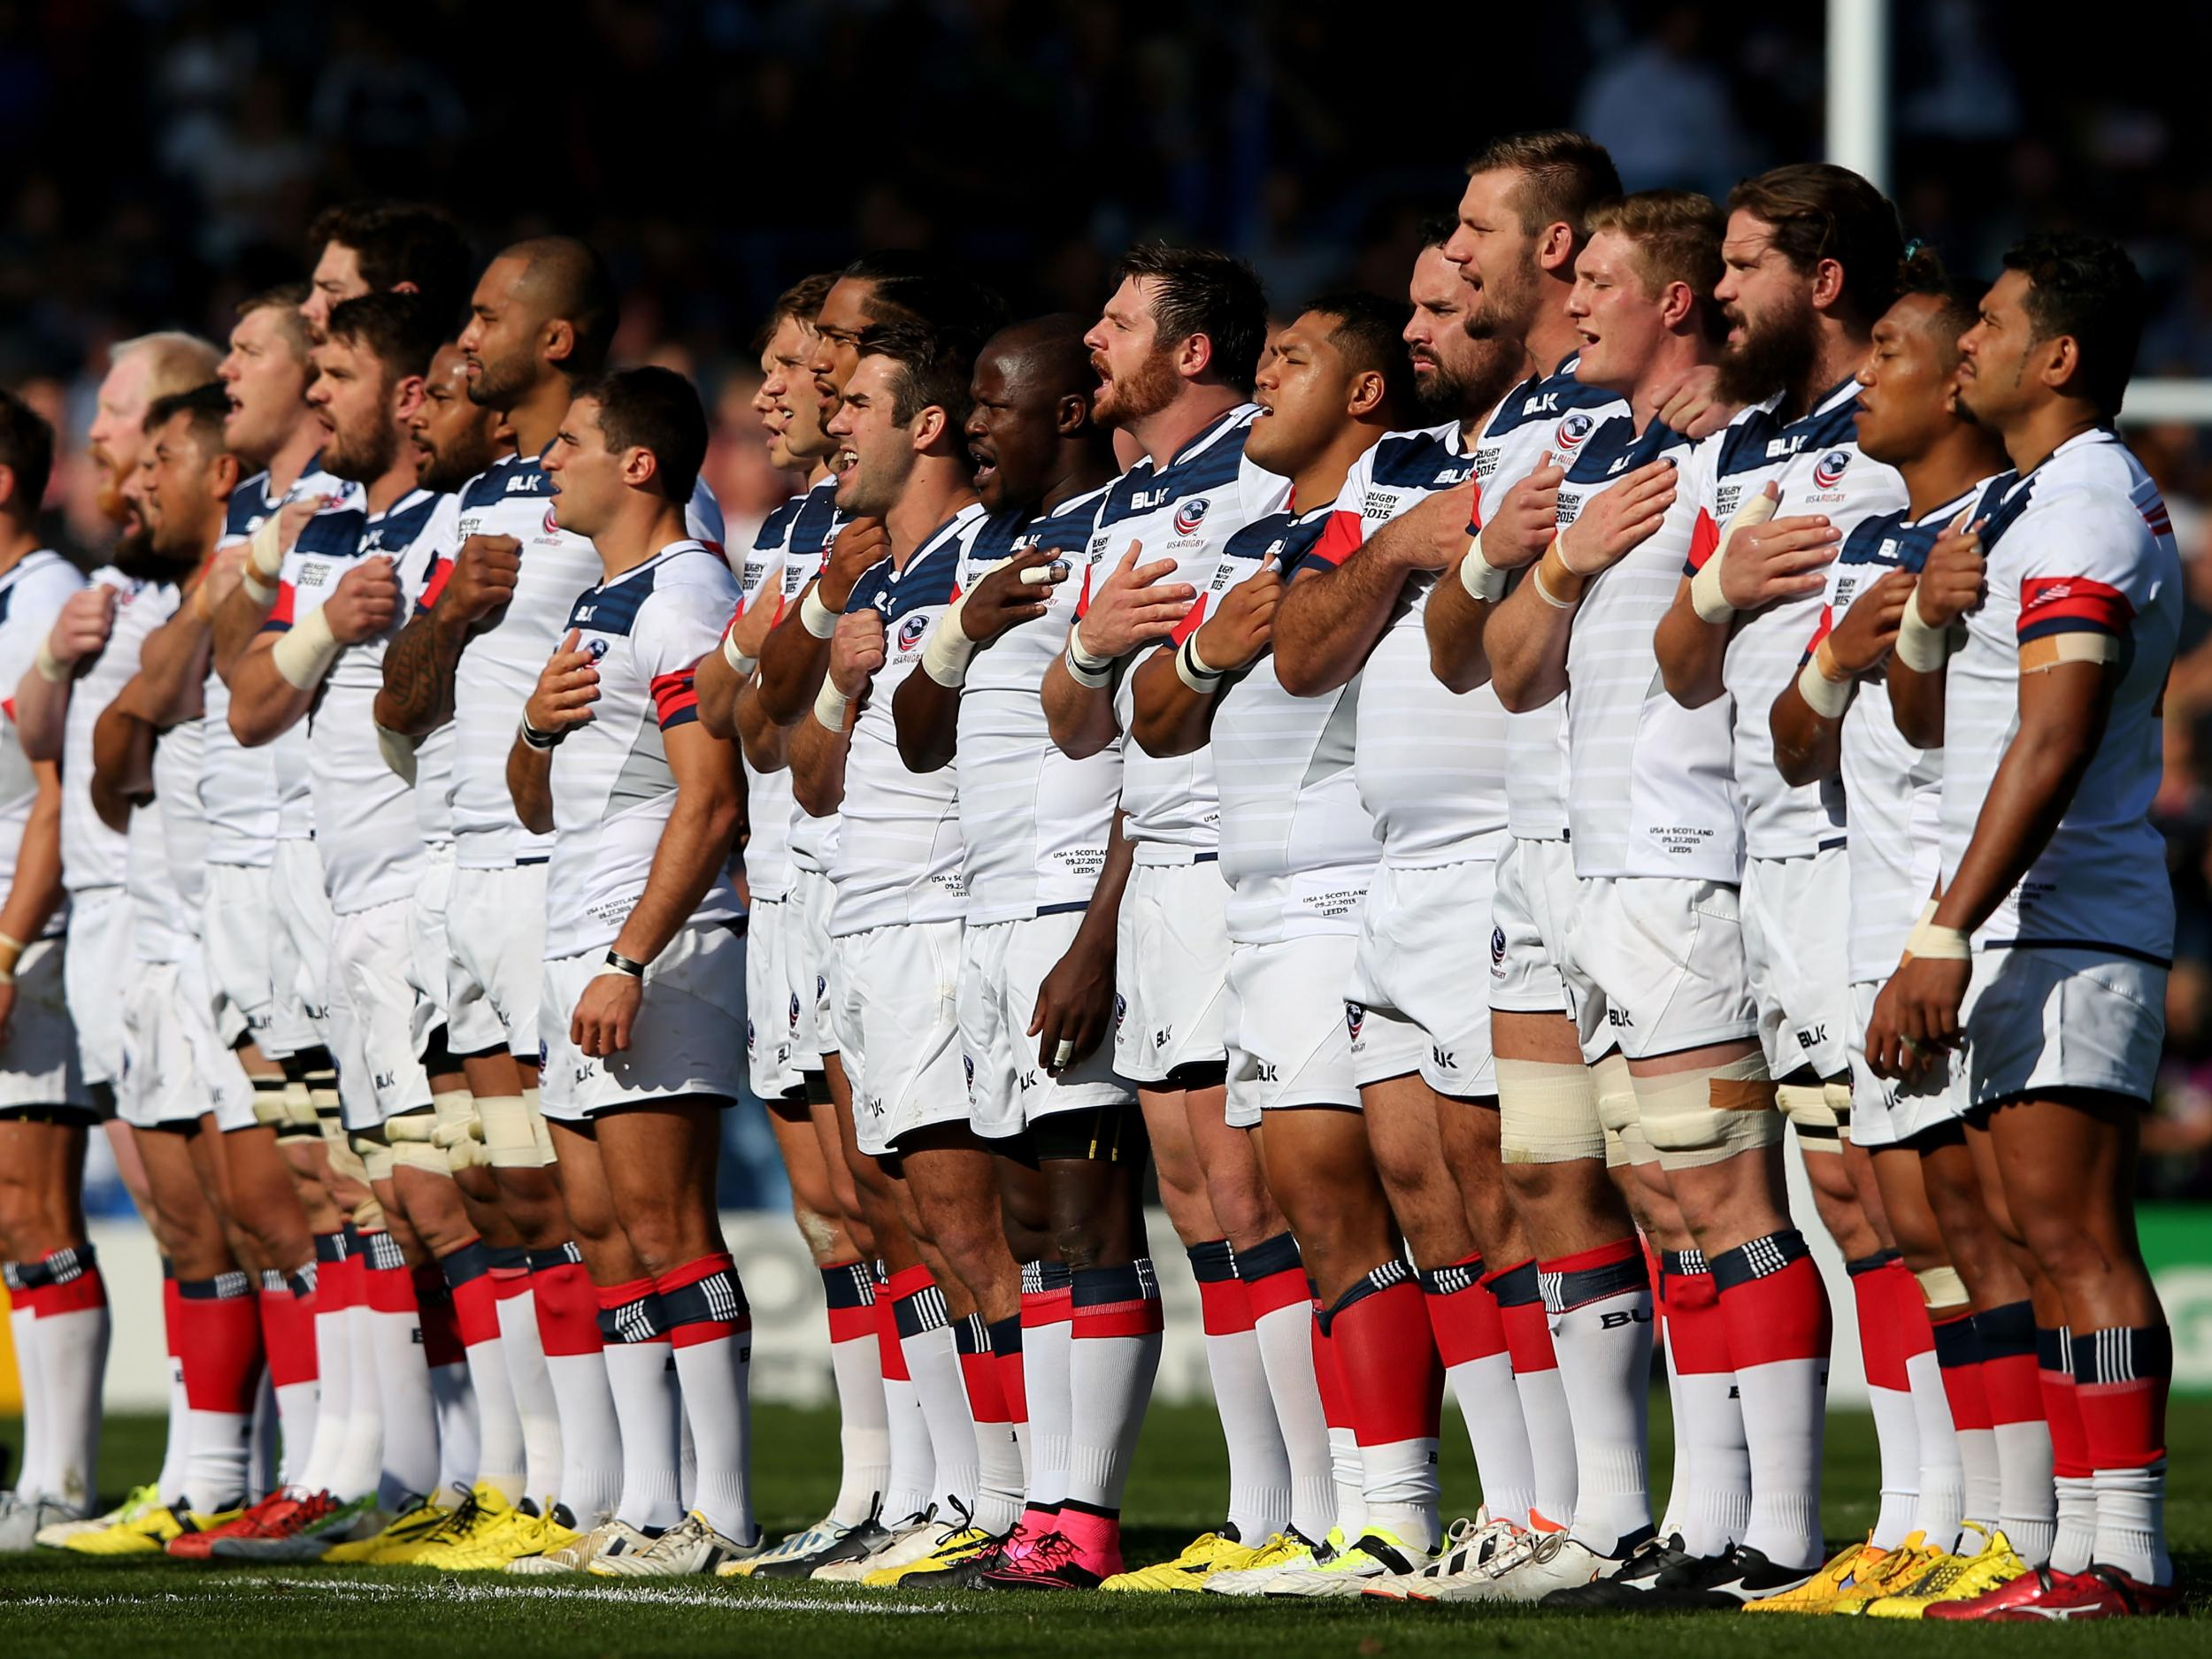 Rugby World Cup – USA profile: Full squad, head coach, key player, prediction and odds